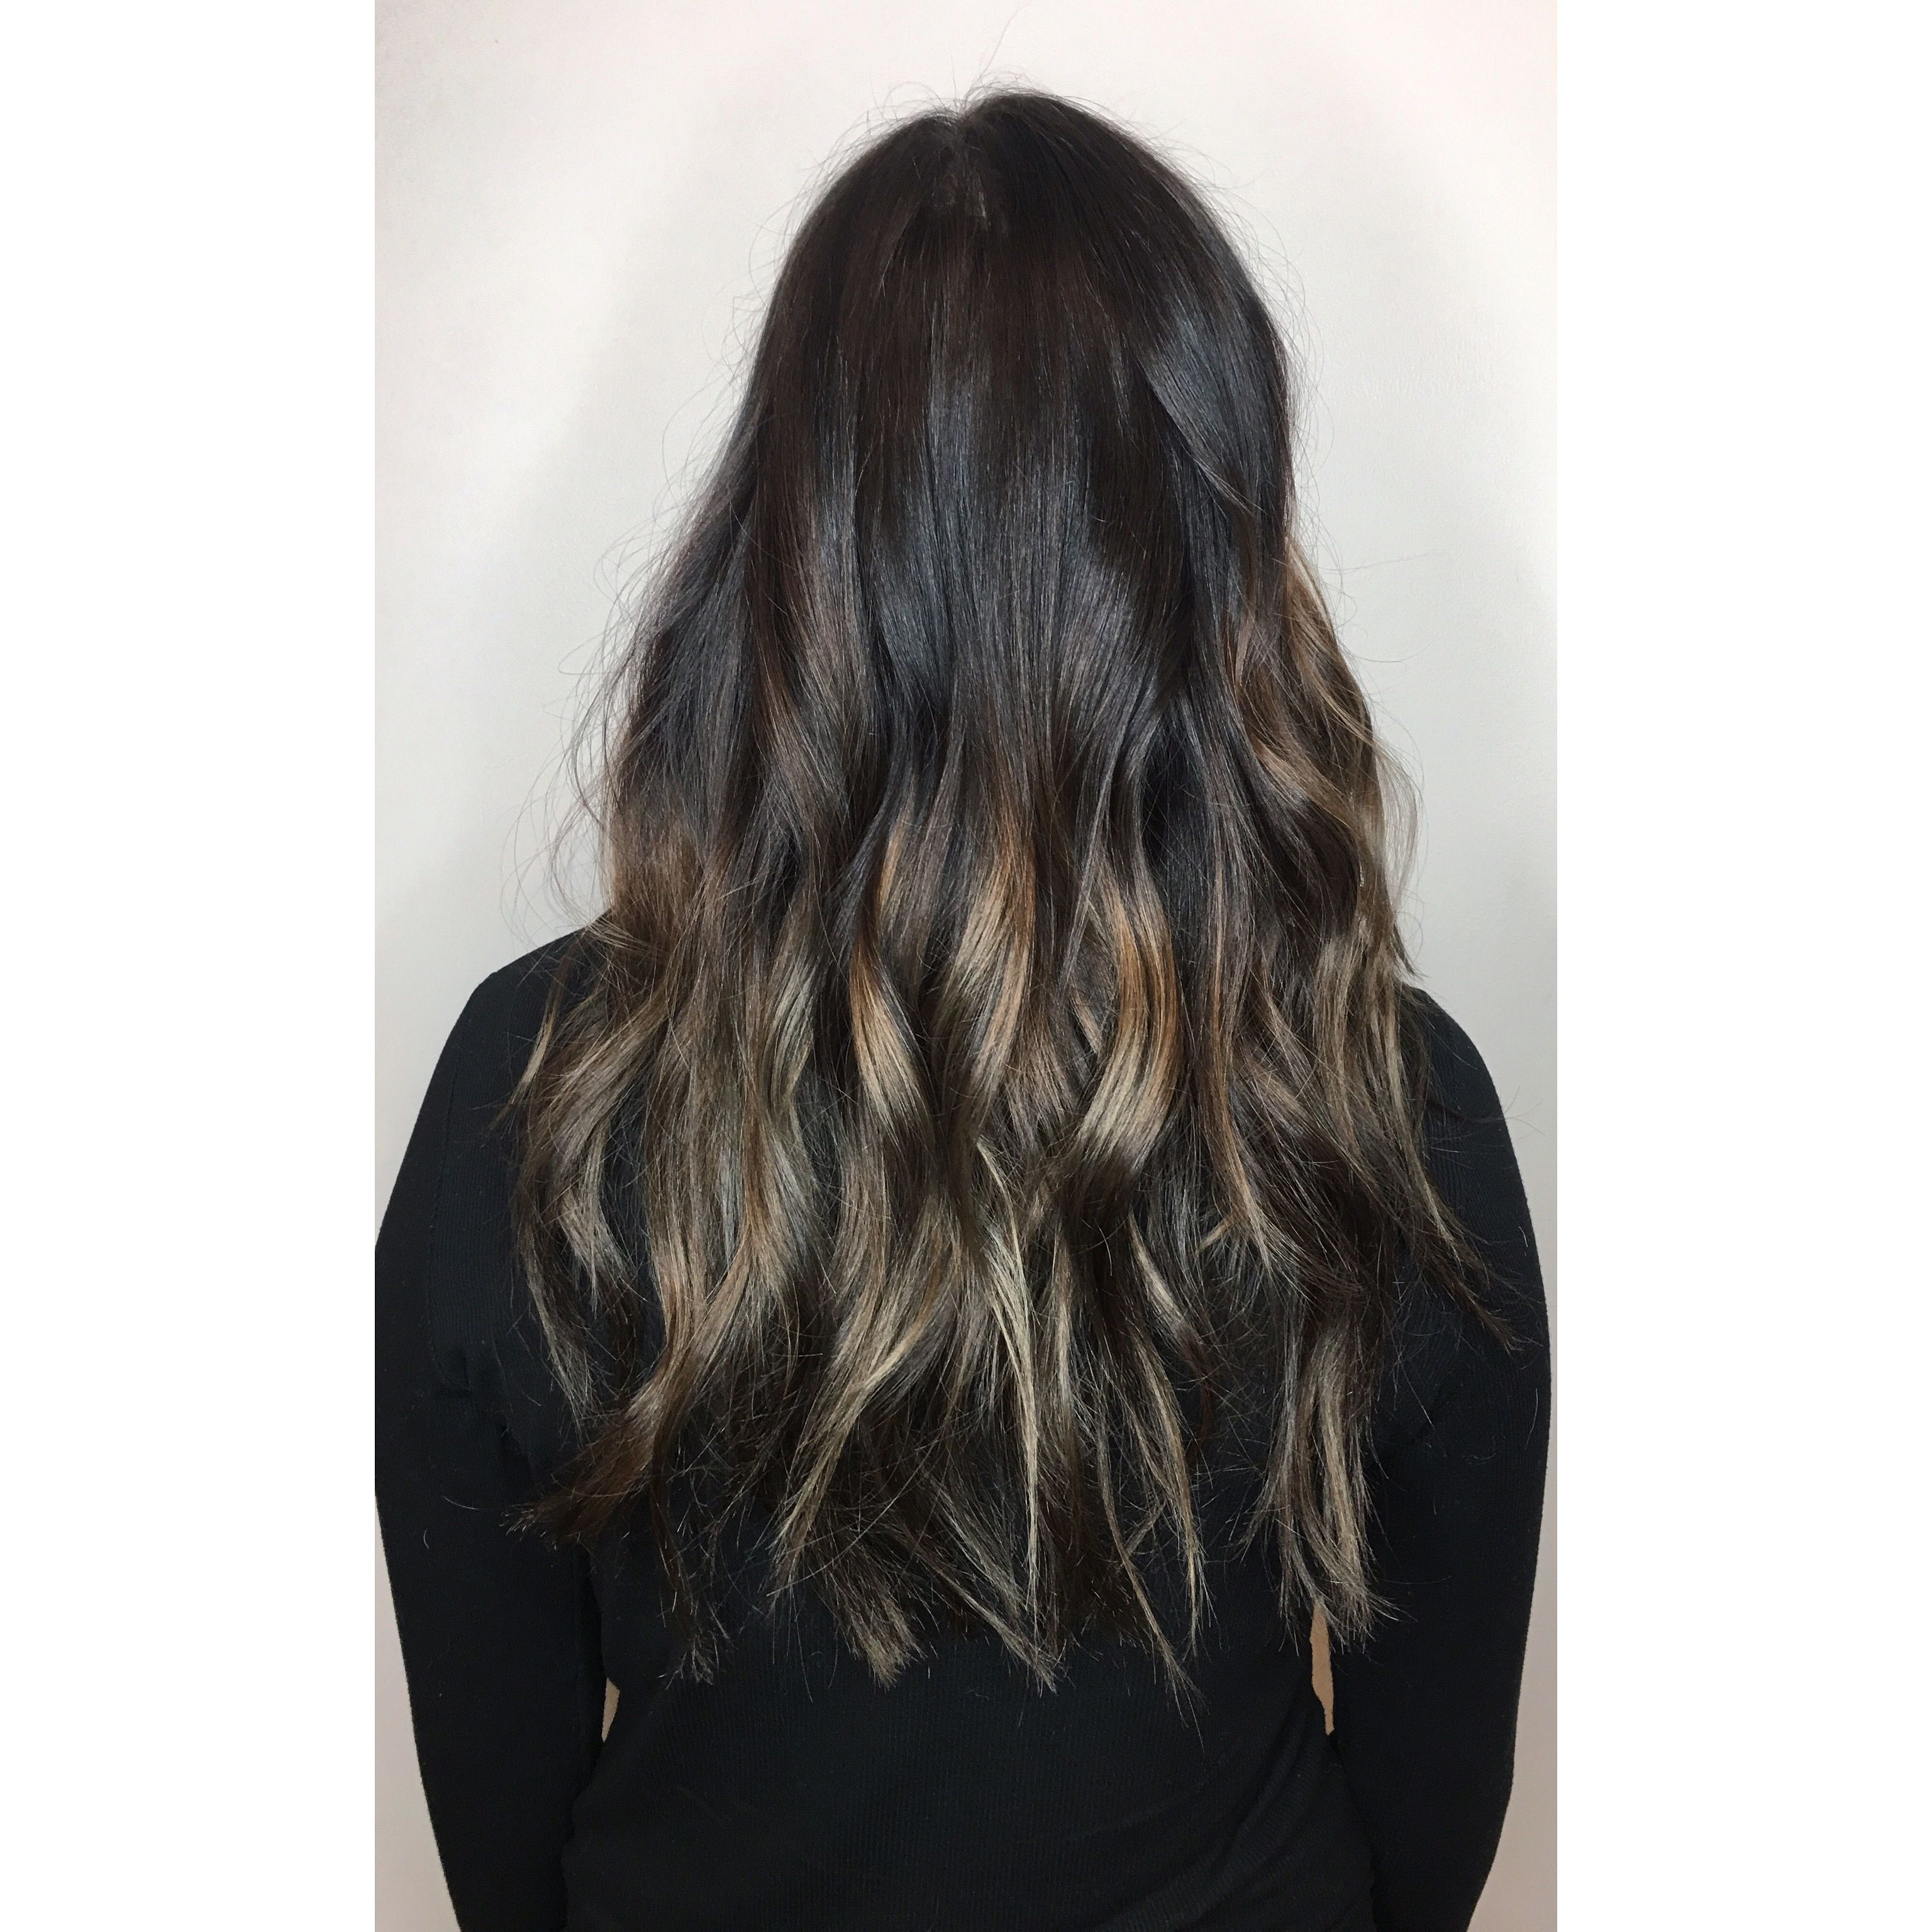 Bespoke Hair Color By Samtape In Hair Extensions Wexford